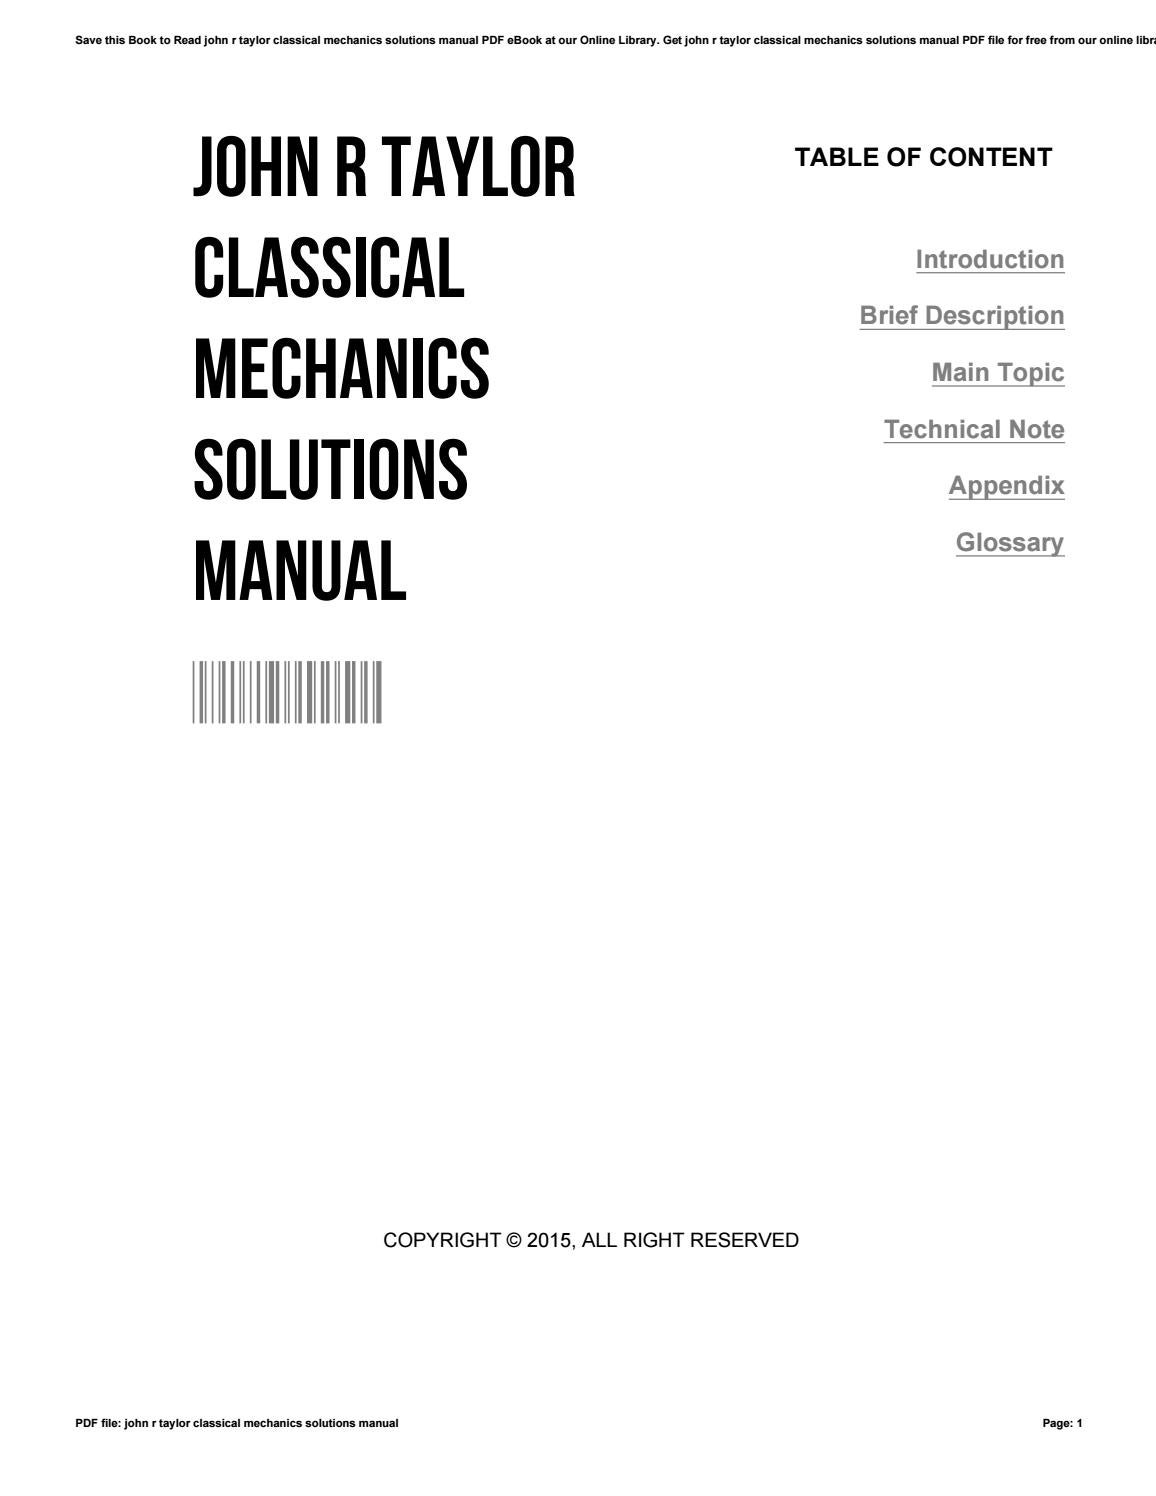 John r taylor classical mechanics solutions manual by